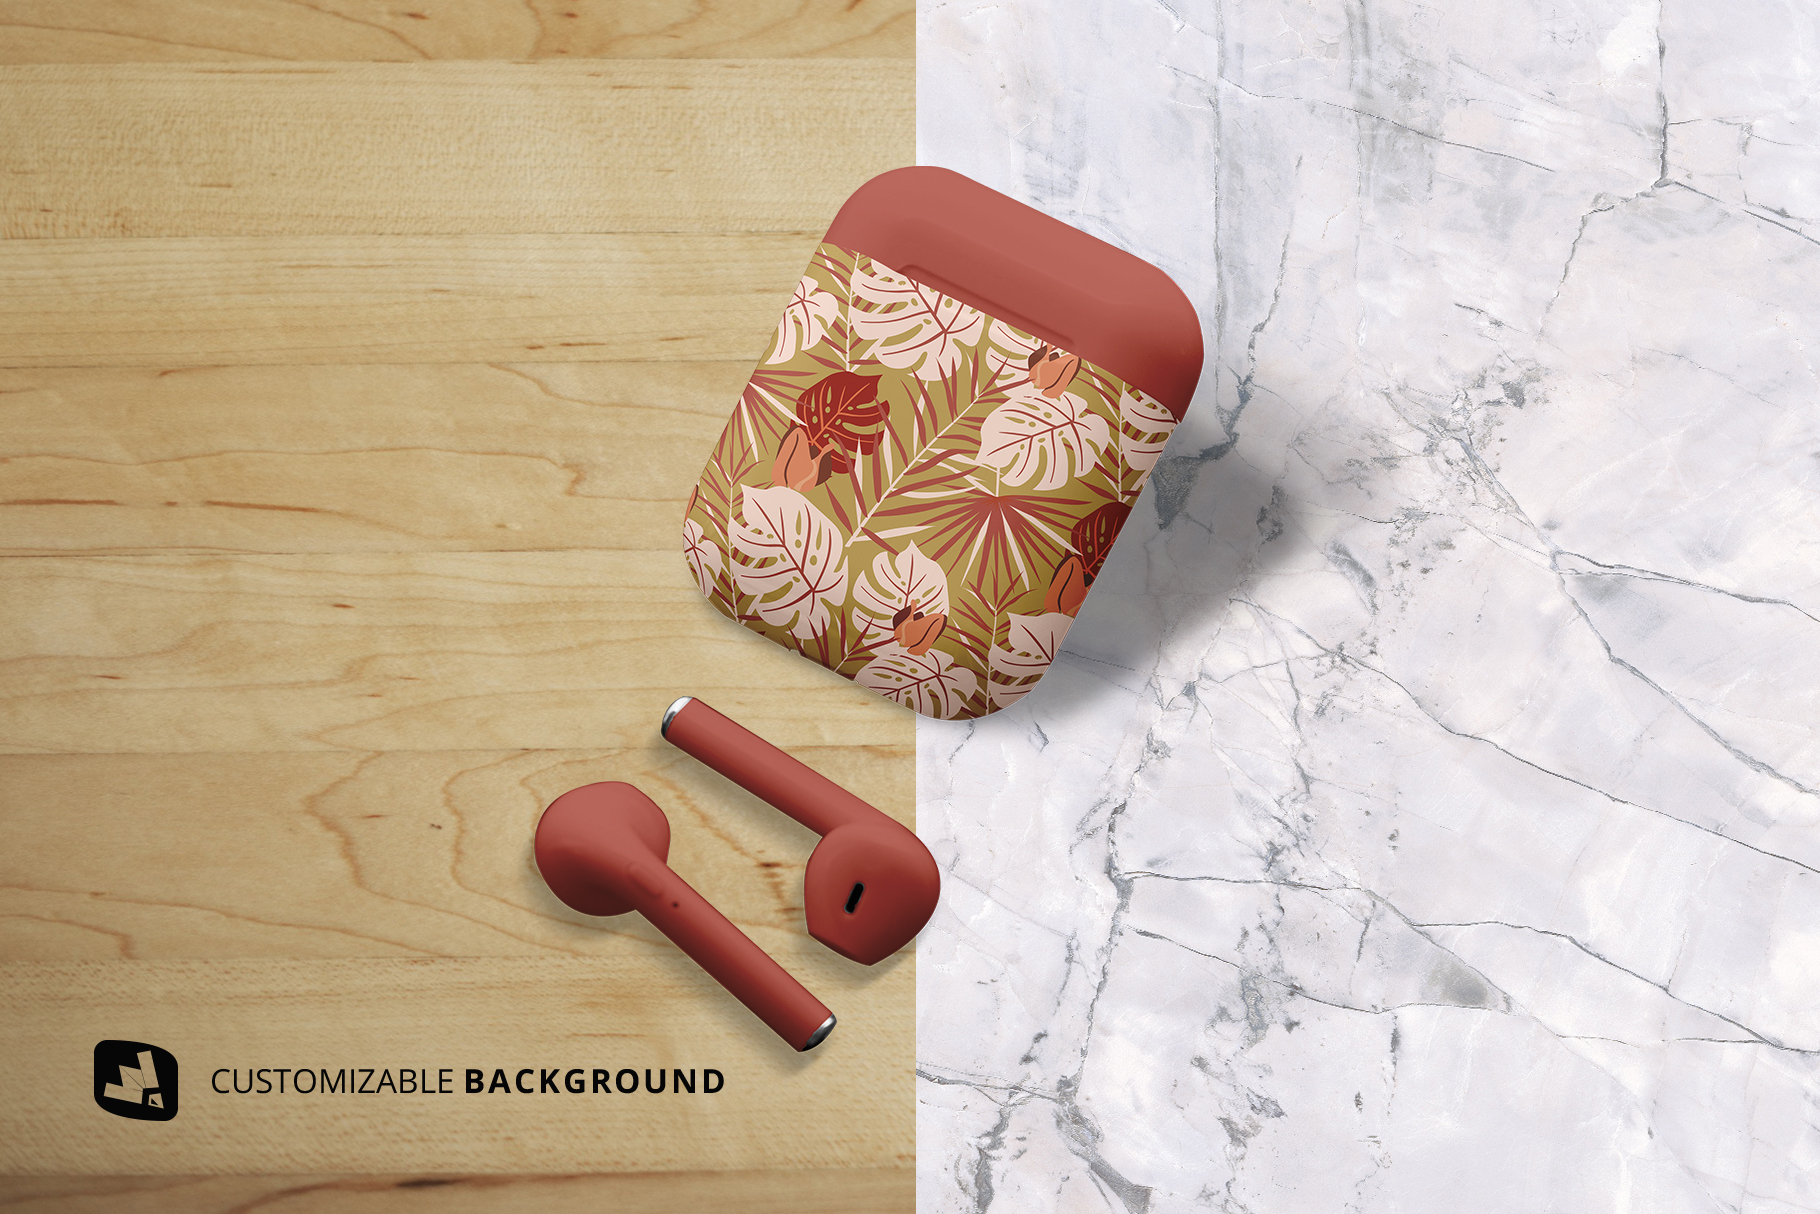 background options of the airpod case mockup